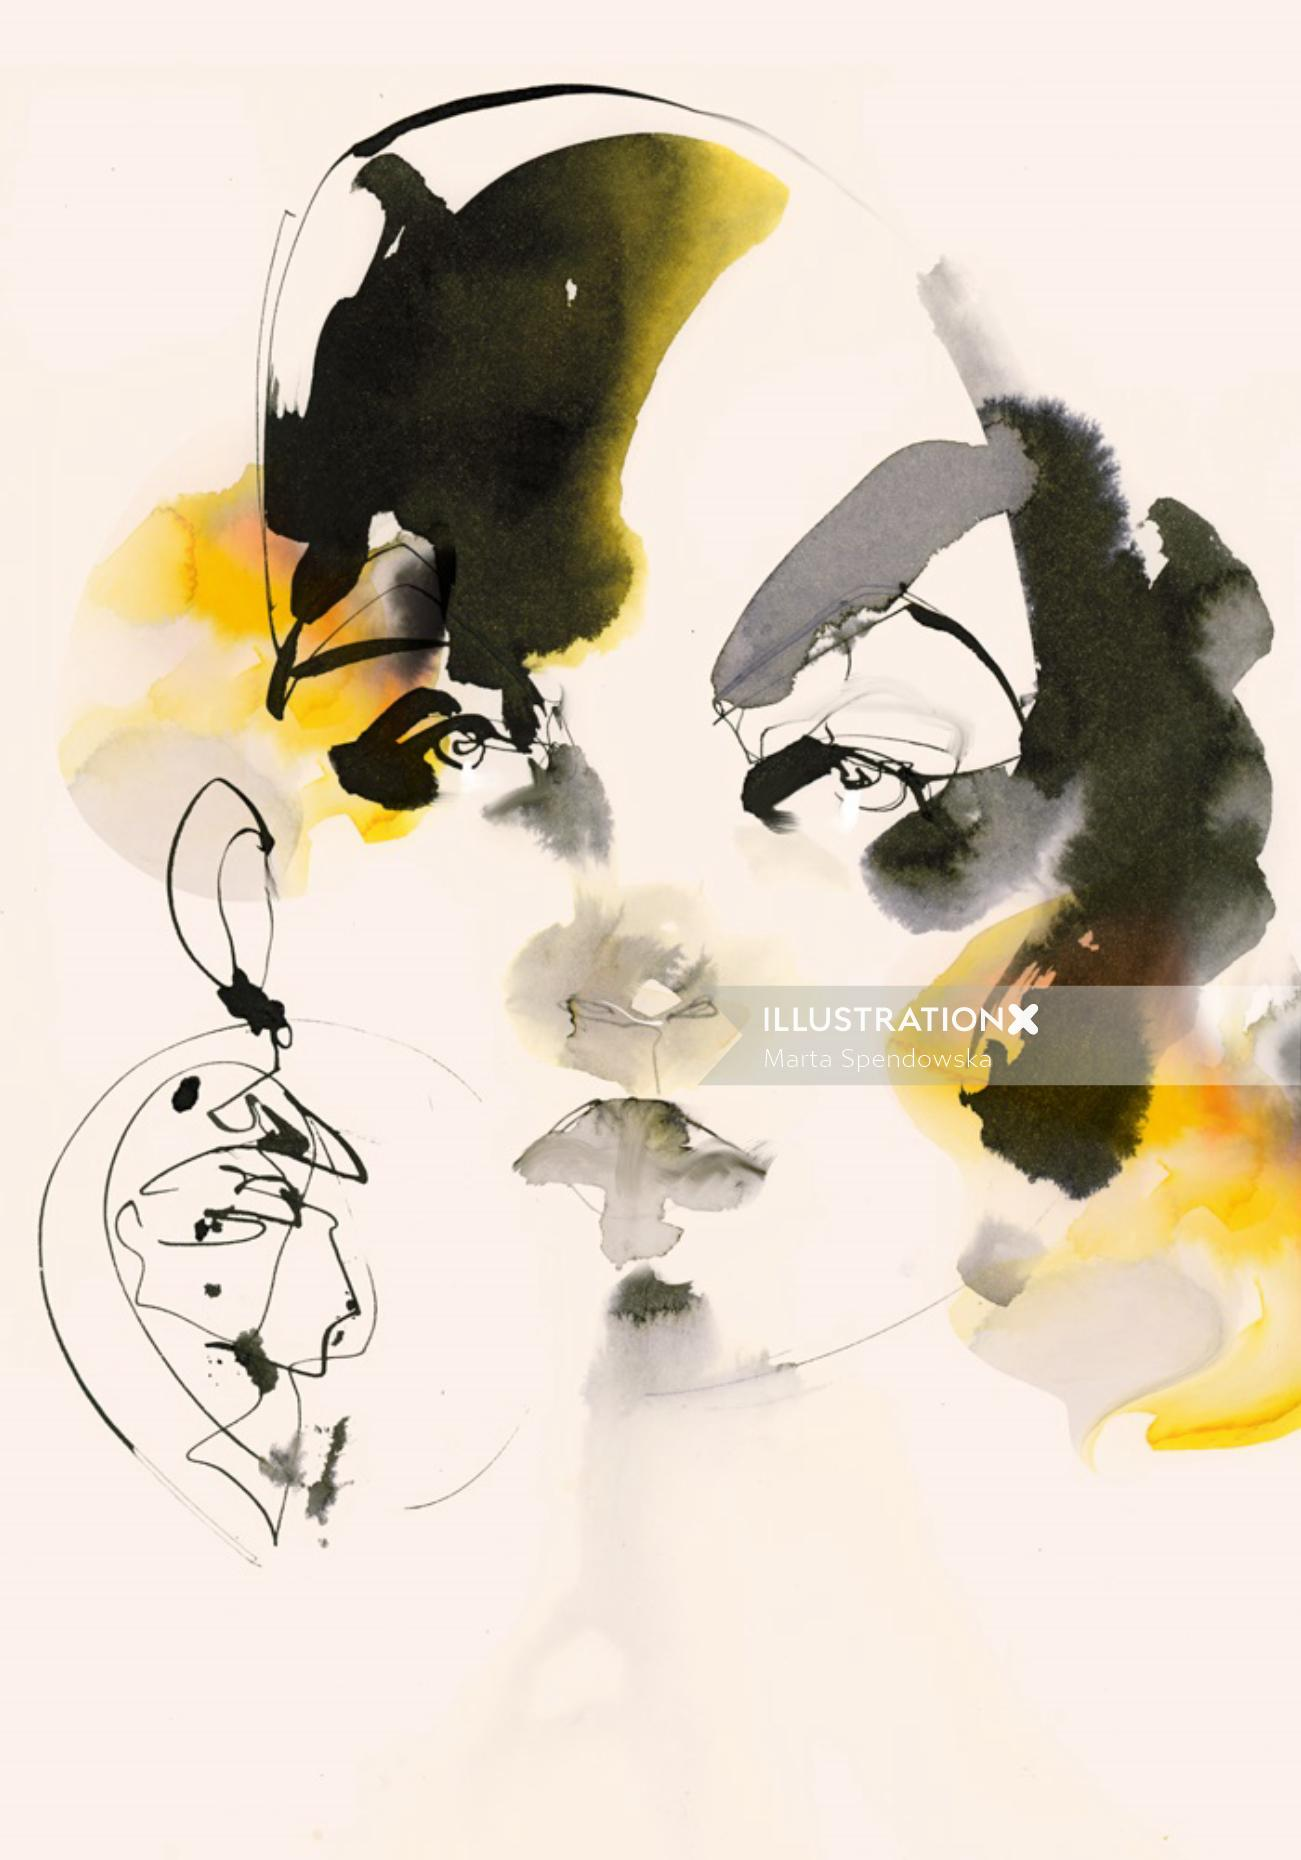 Abstract illustration of a lady